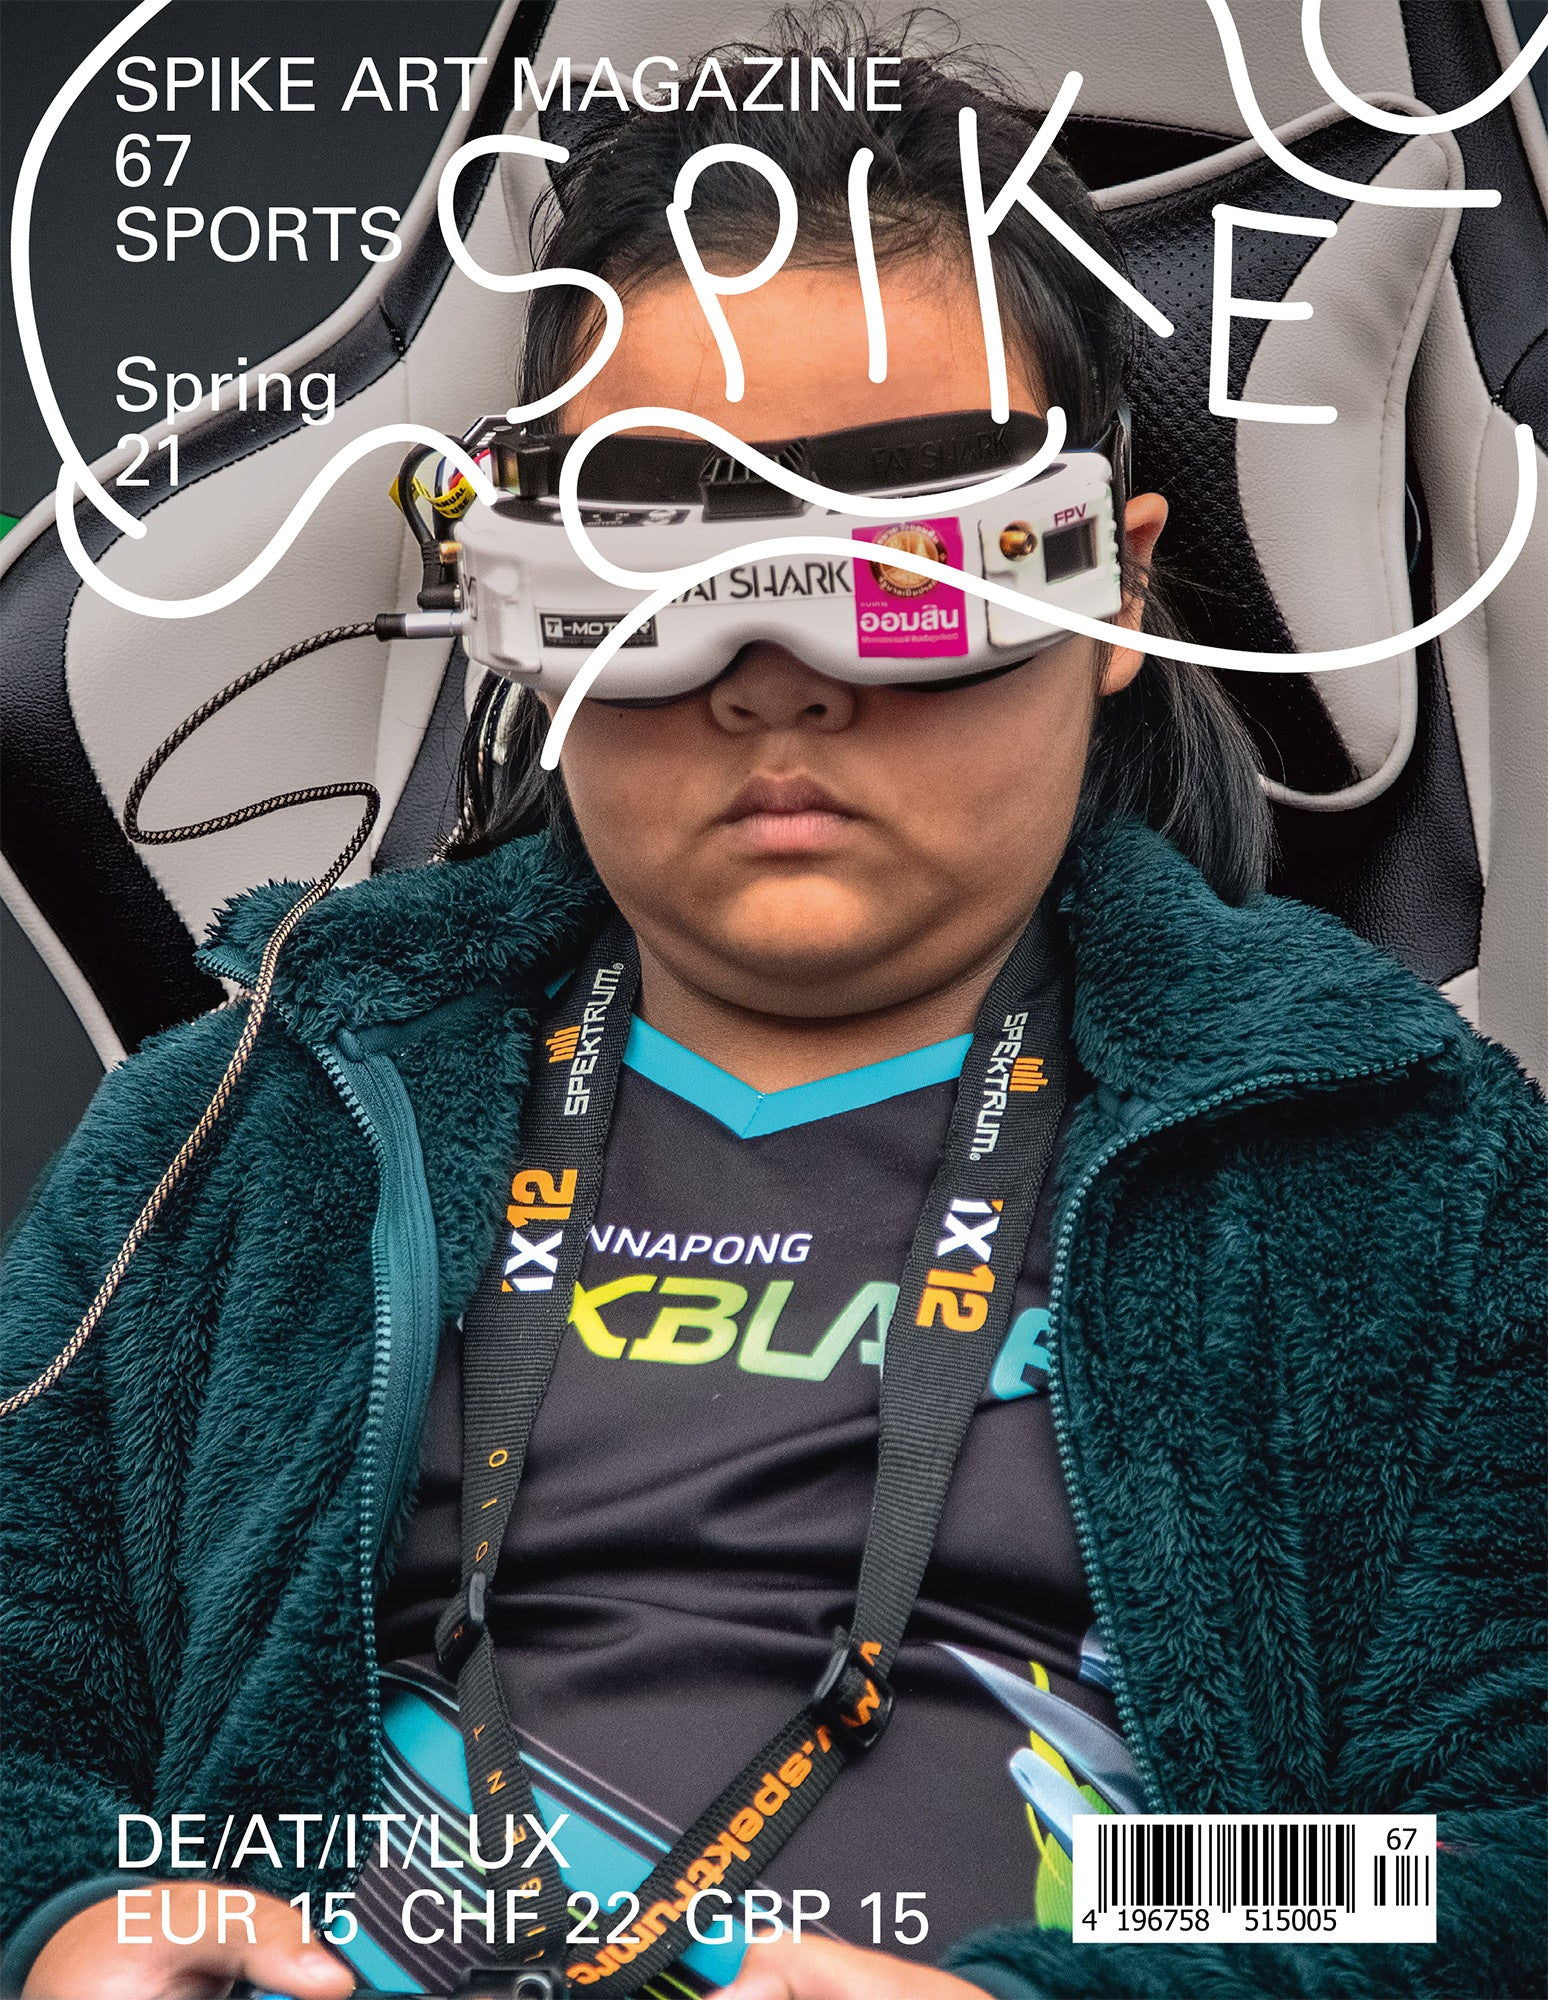 ISSUE 67 (SPRING 2021): Sports